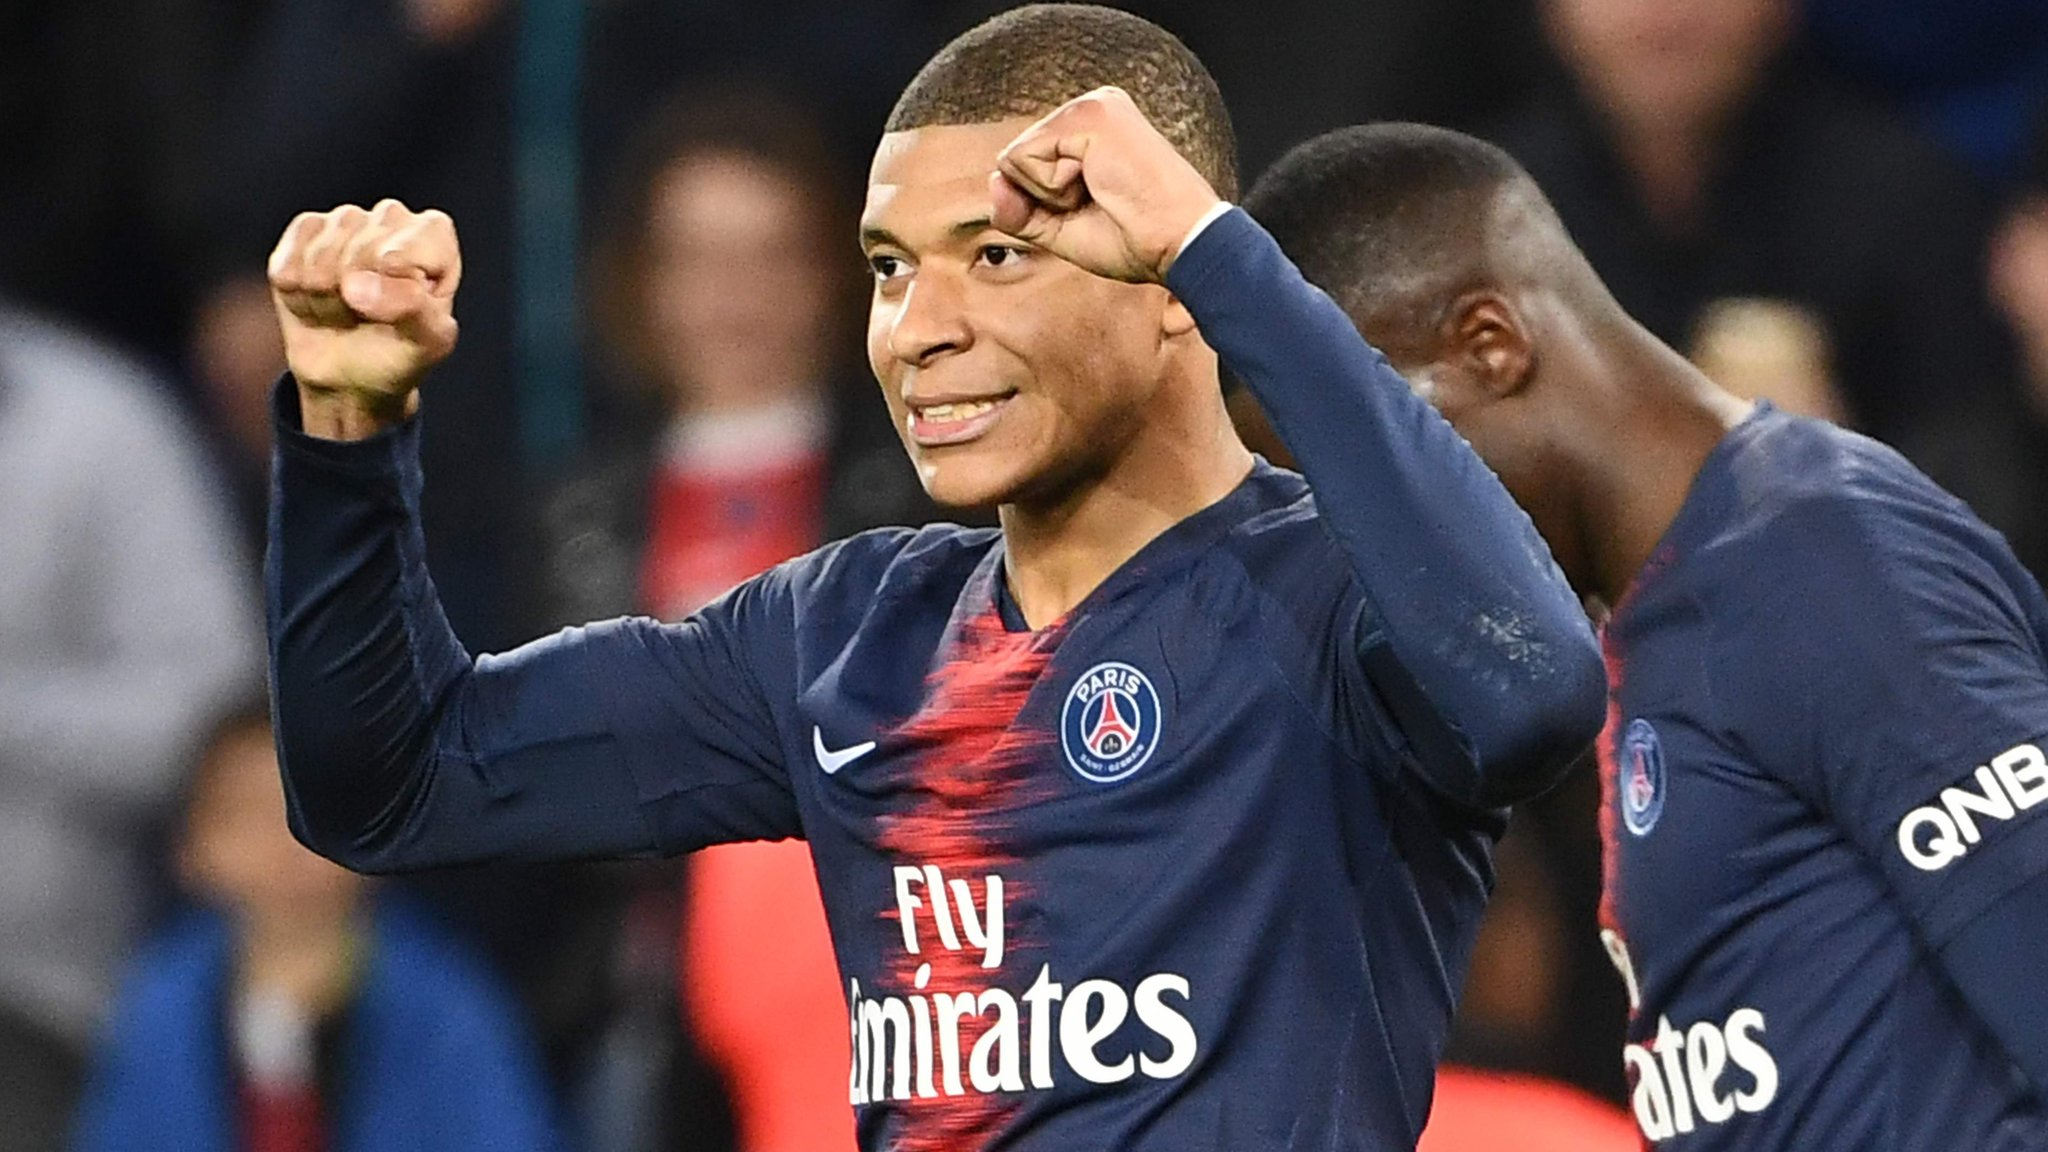 Paris St-Germain 3-0 Nimes: Kylian Mbappe scores twice as PSG go 17 clear